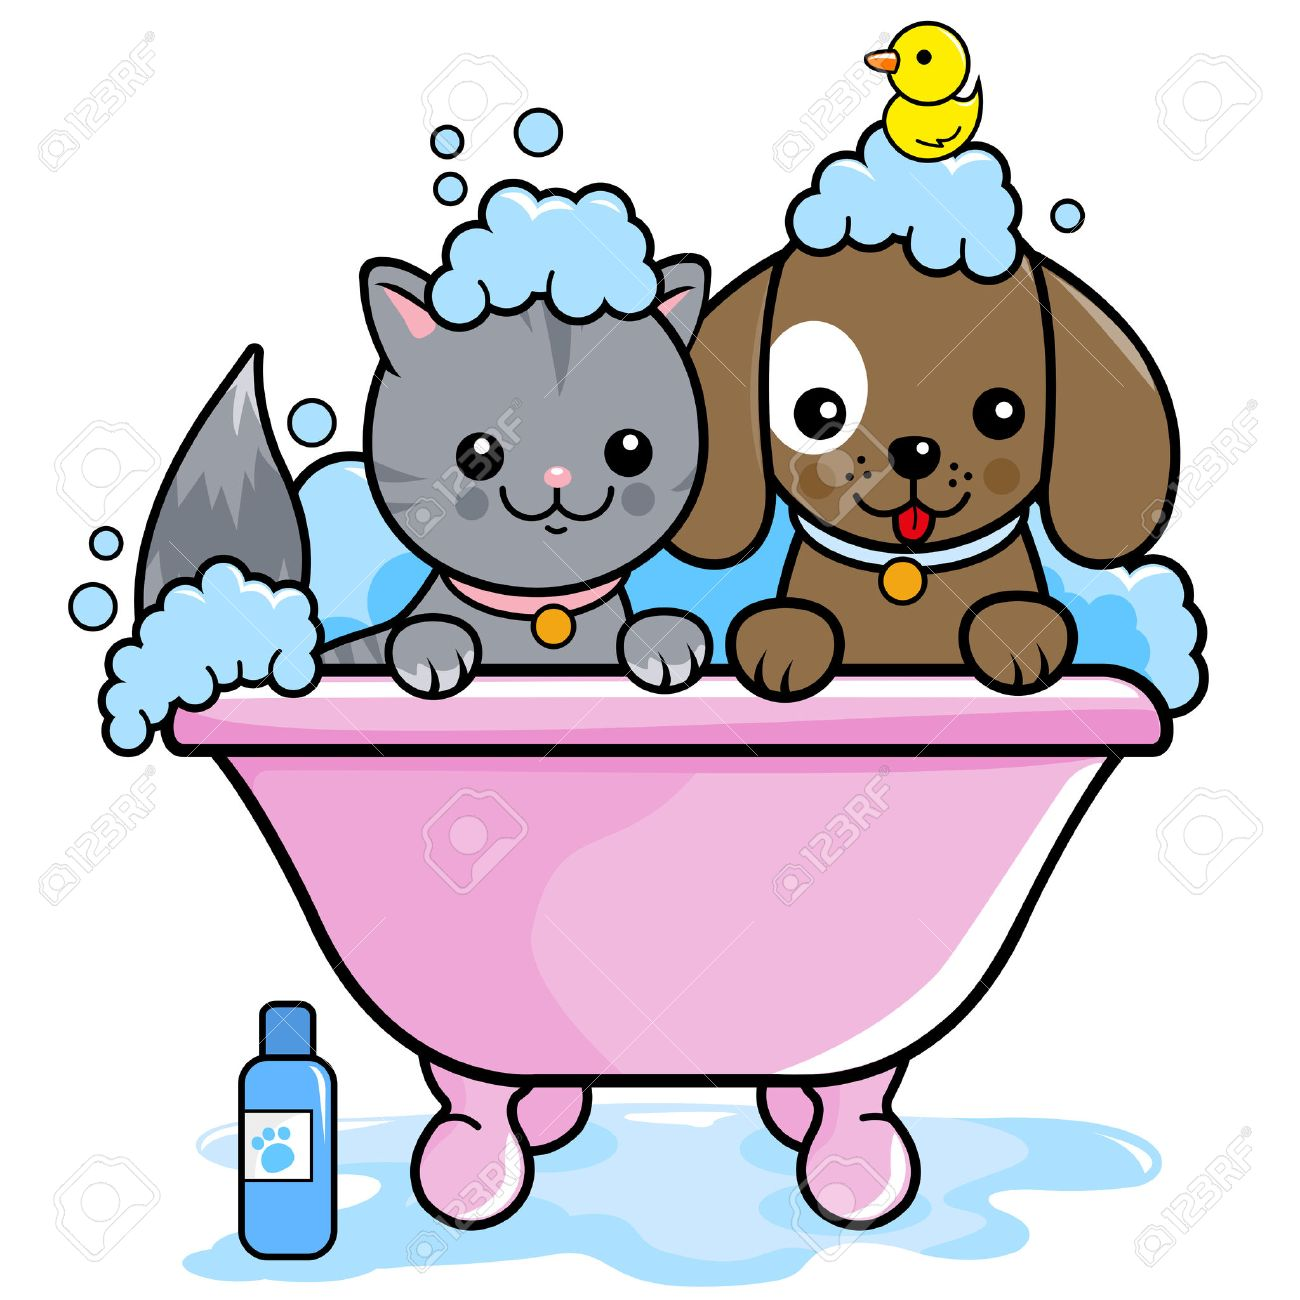 dog and a cat in a tub taking a bubble bath royalty free cliparts rh 123rf com girl in bubble bath clipart bubble bath clipart images